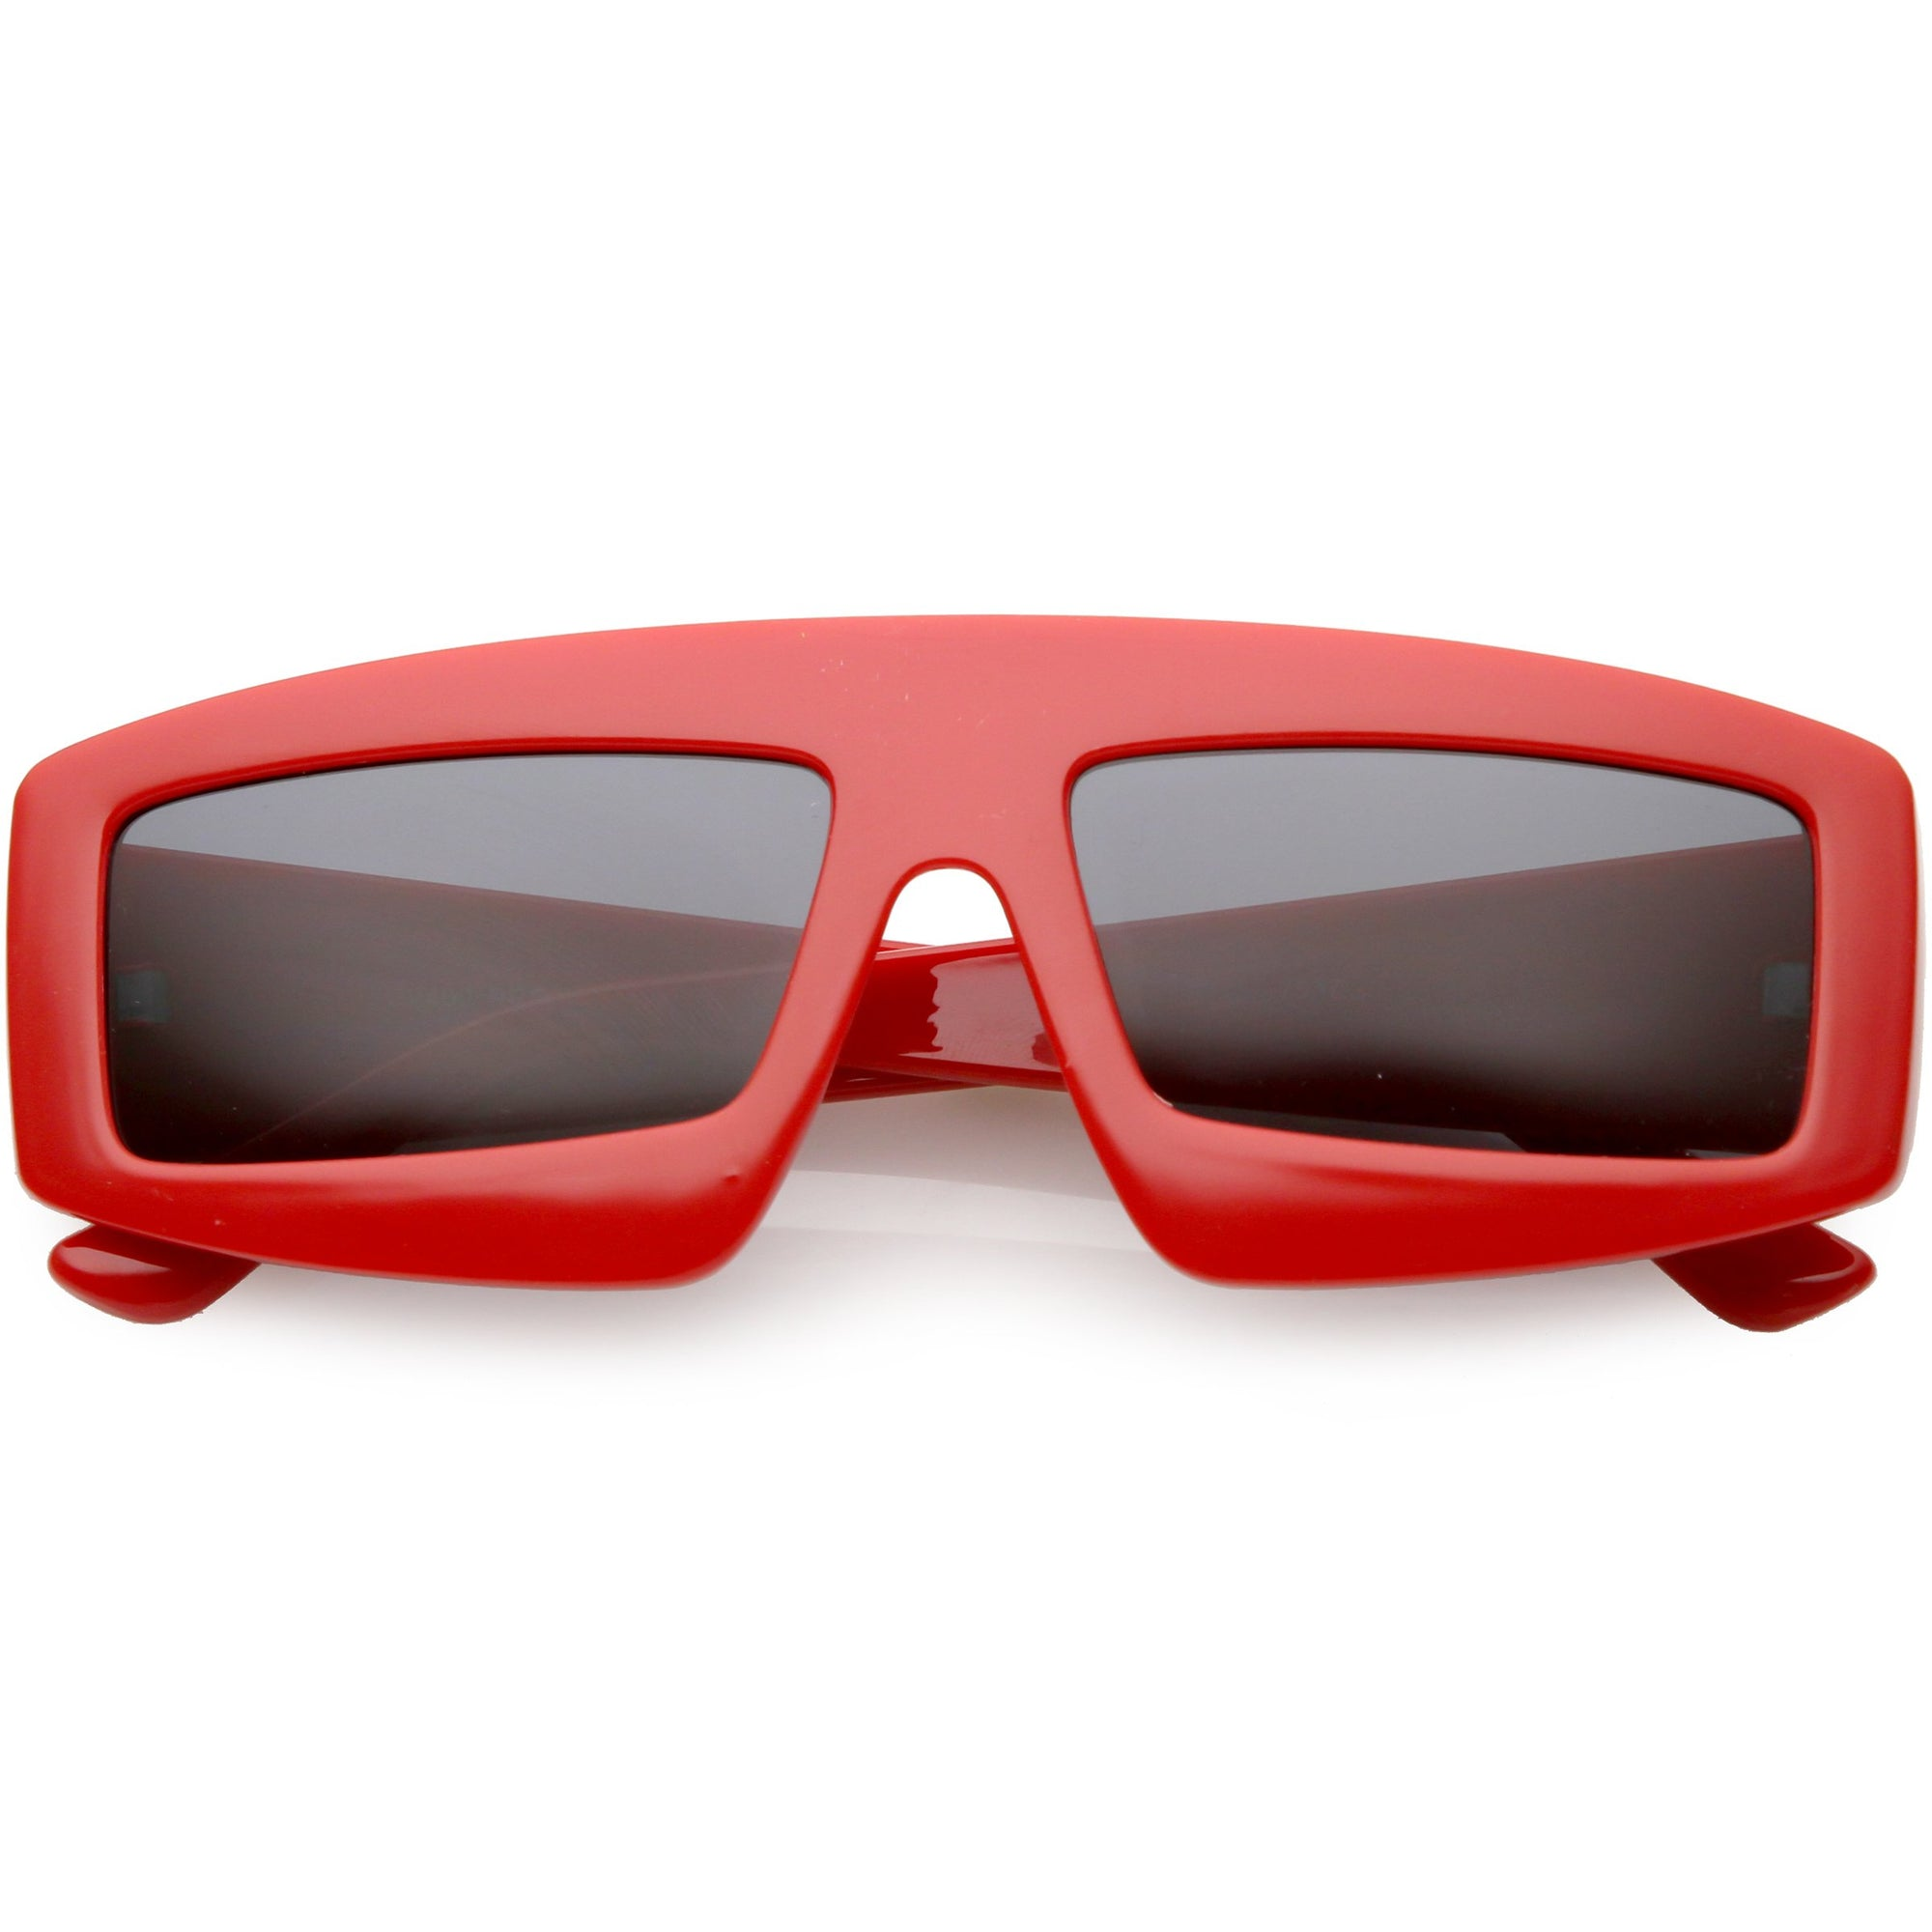 0ae8d4743b2 Futuristic Retro Rectangle Block Flat Lens Sunglasses C752